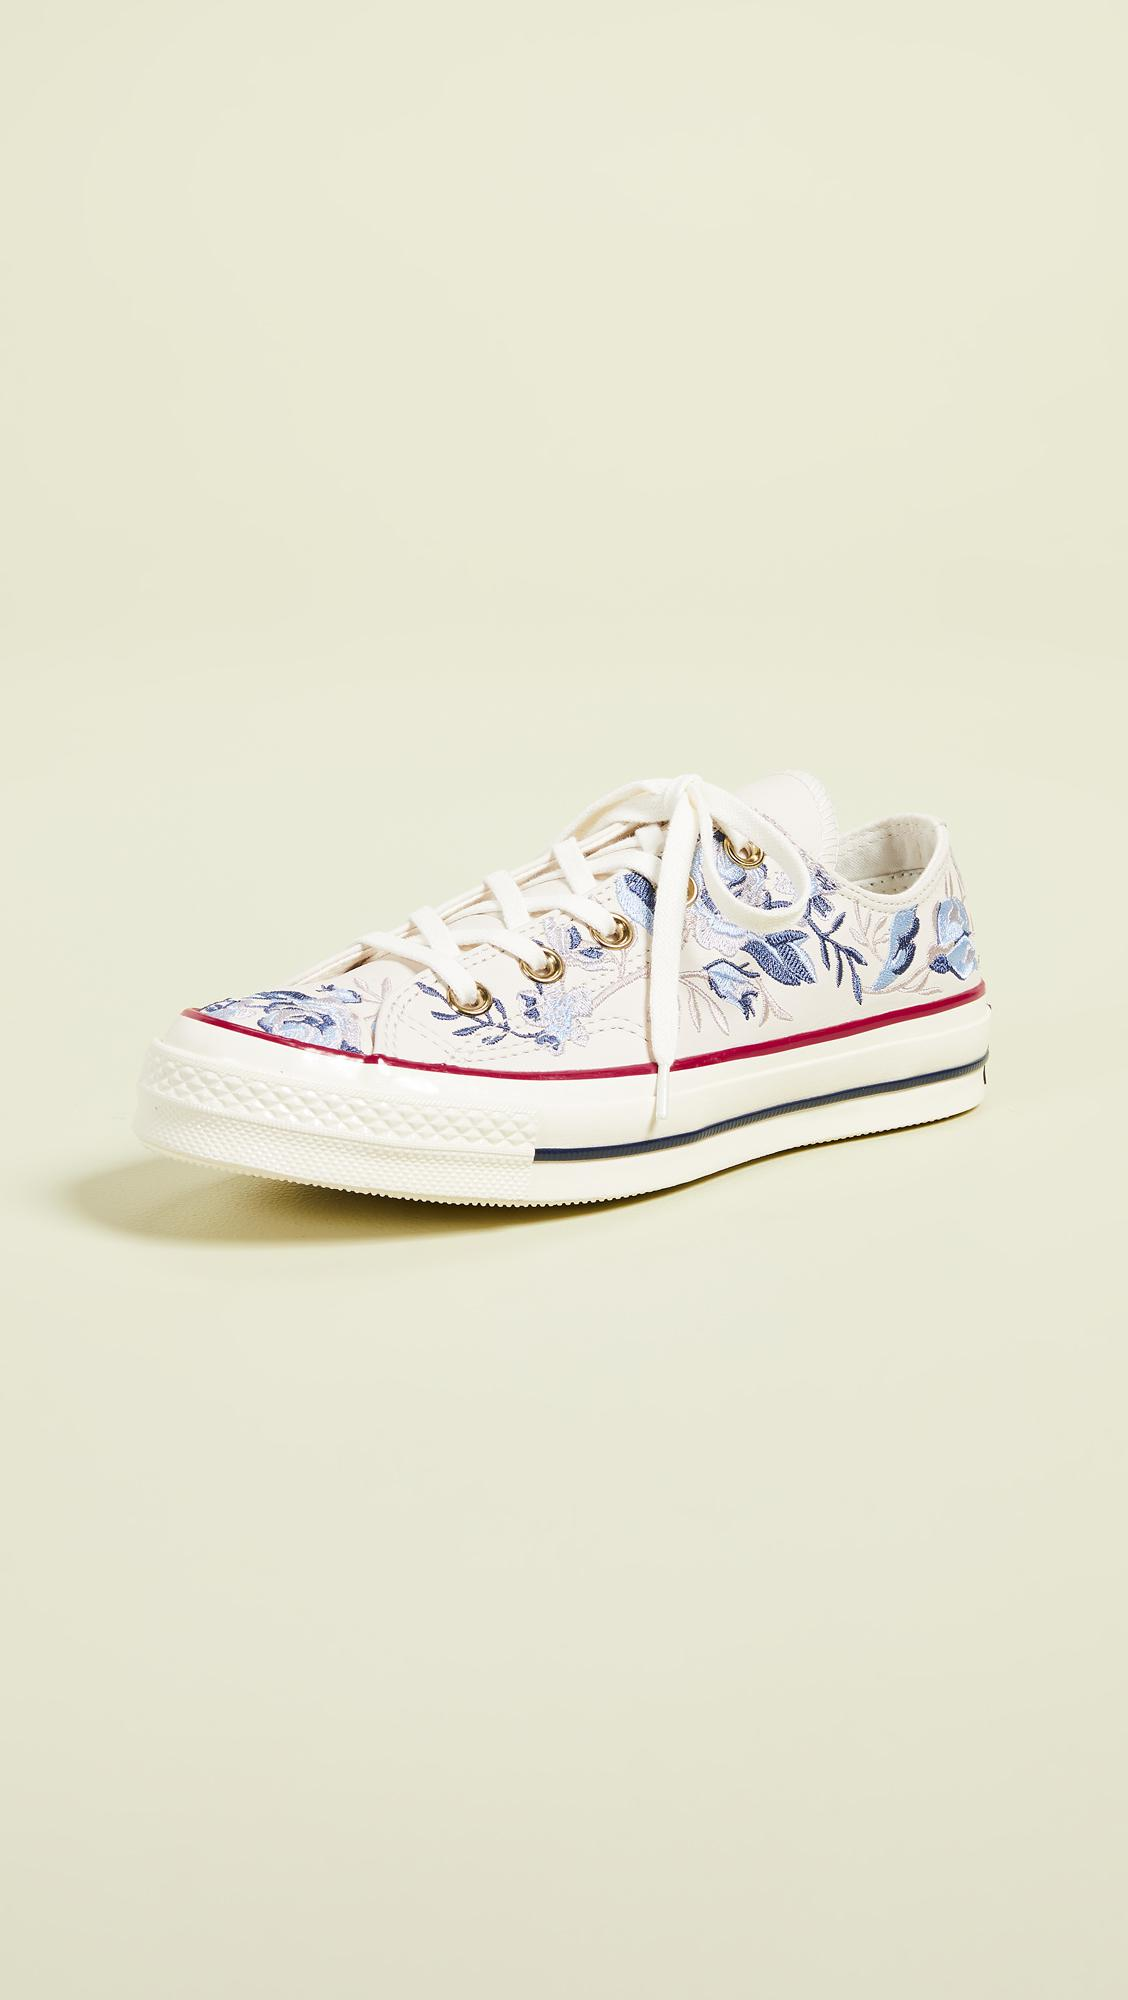 01e9cc9f9a57 Lyst - Converse Chuck 70s Oxford Parkway Floral Sneakers